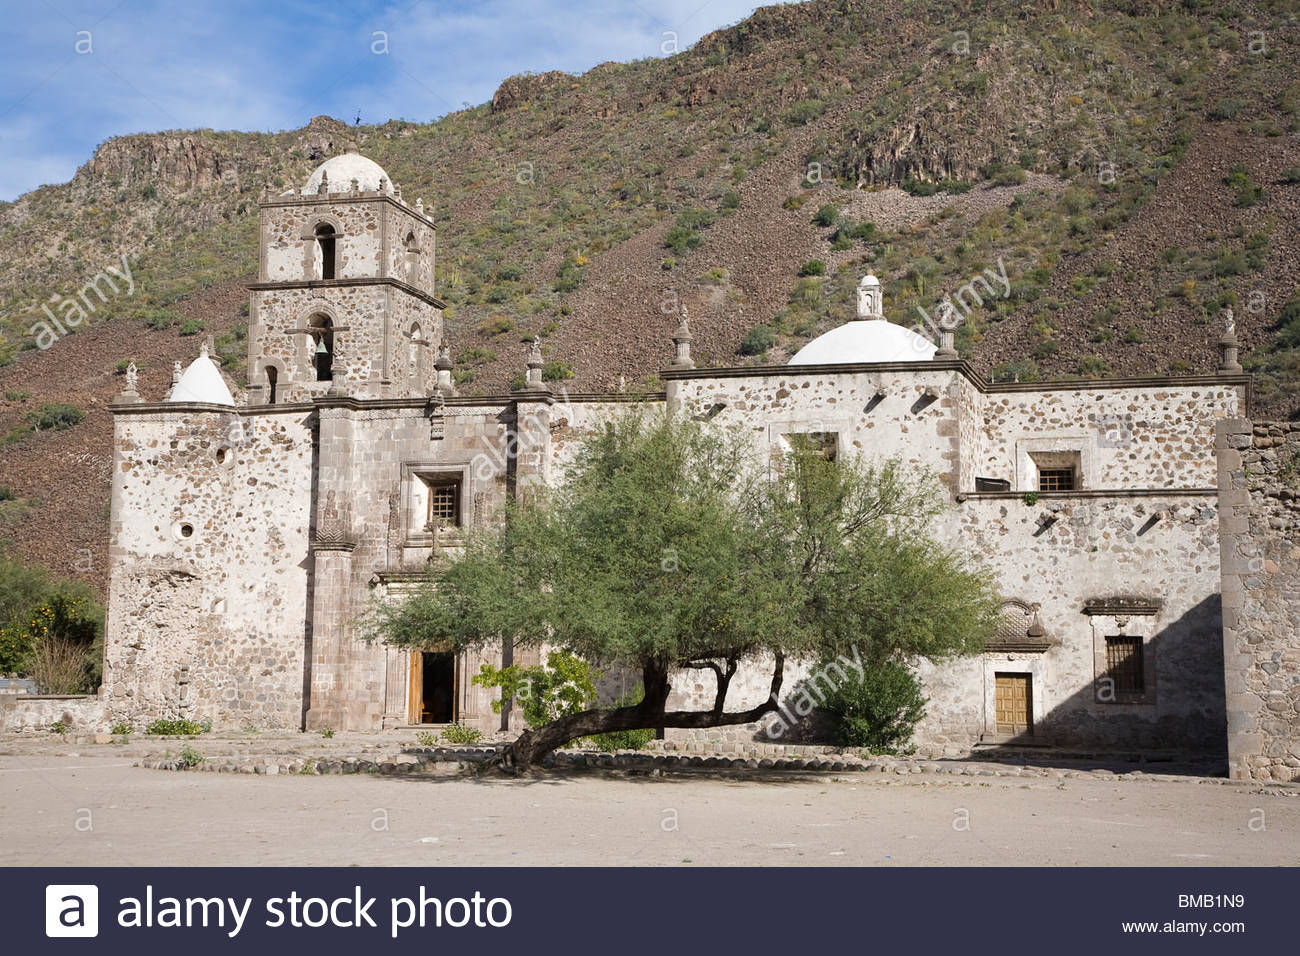 The mission San Francisco Javier de Vigge-Biaundo, Spanish mission built in 1699. - Stock Image